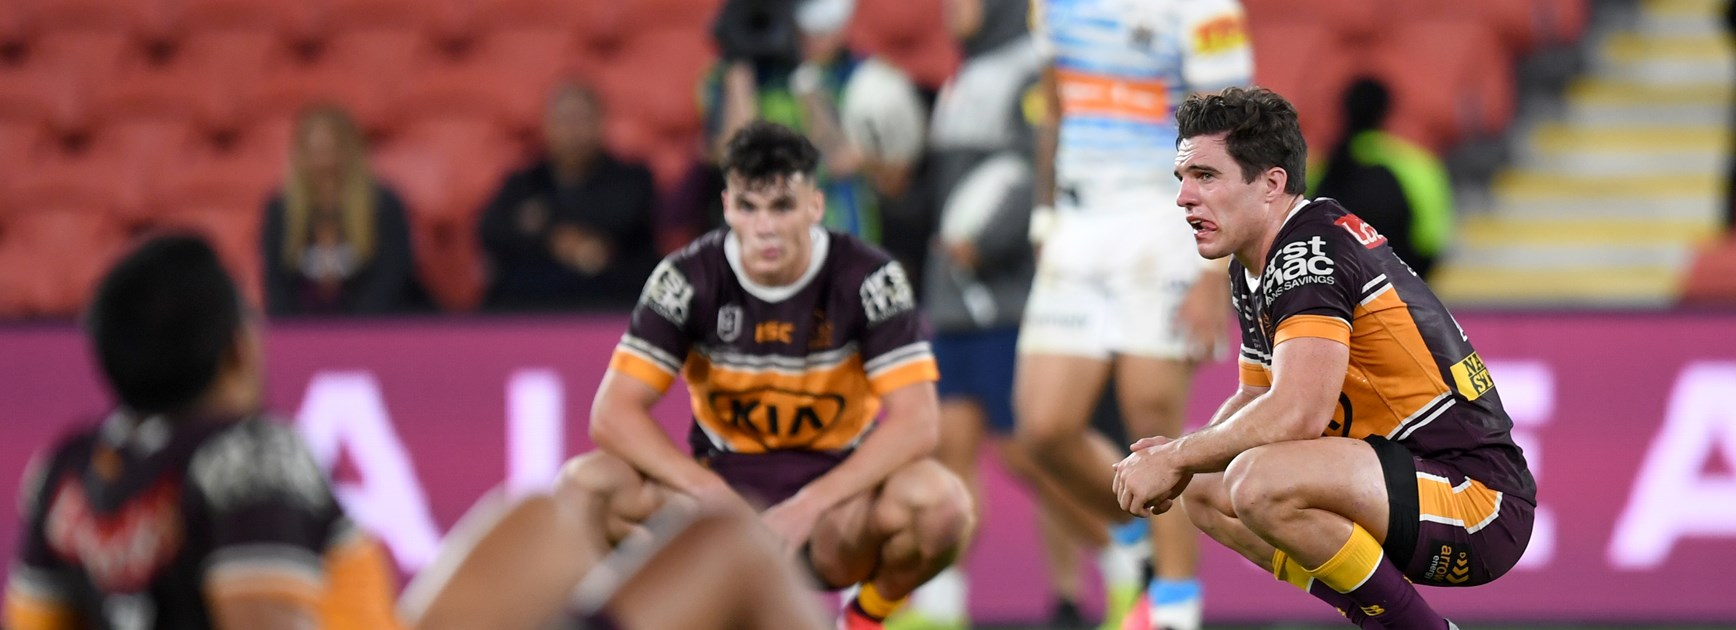 Broncos trio Anthony Milford, Herbie Farnworth and Brodie Croft feel the sting of defeat.